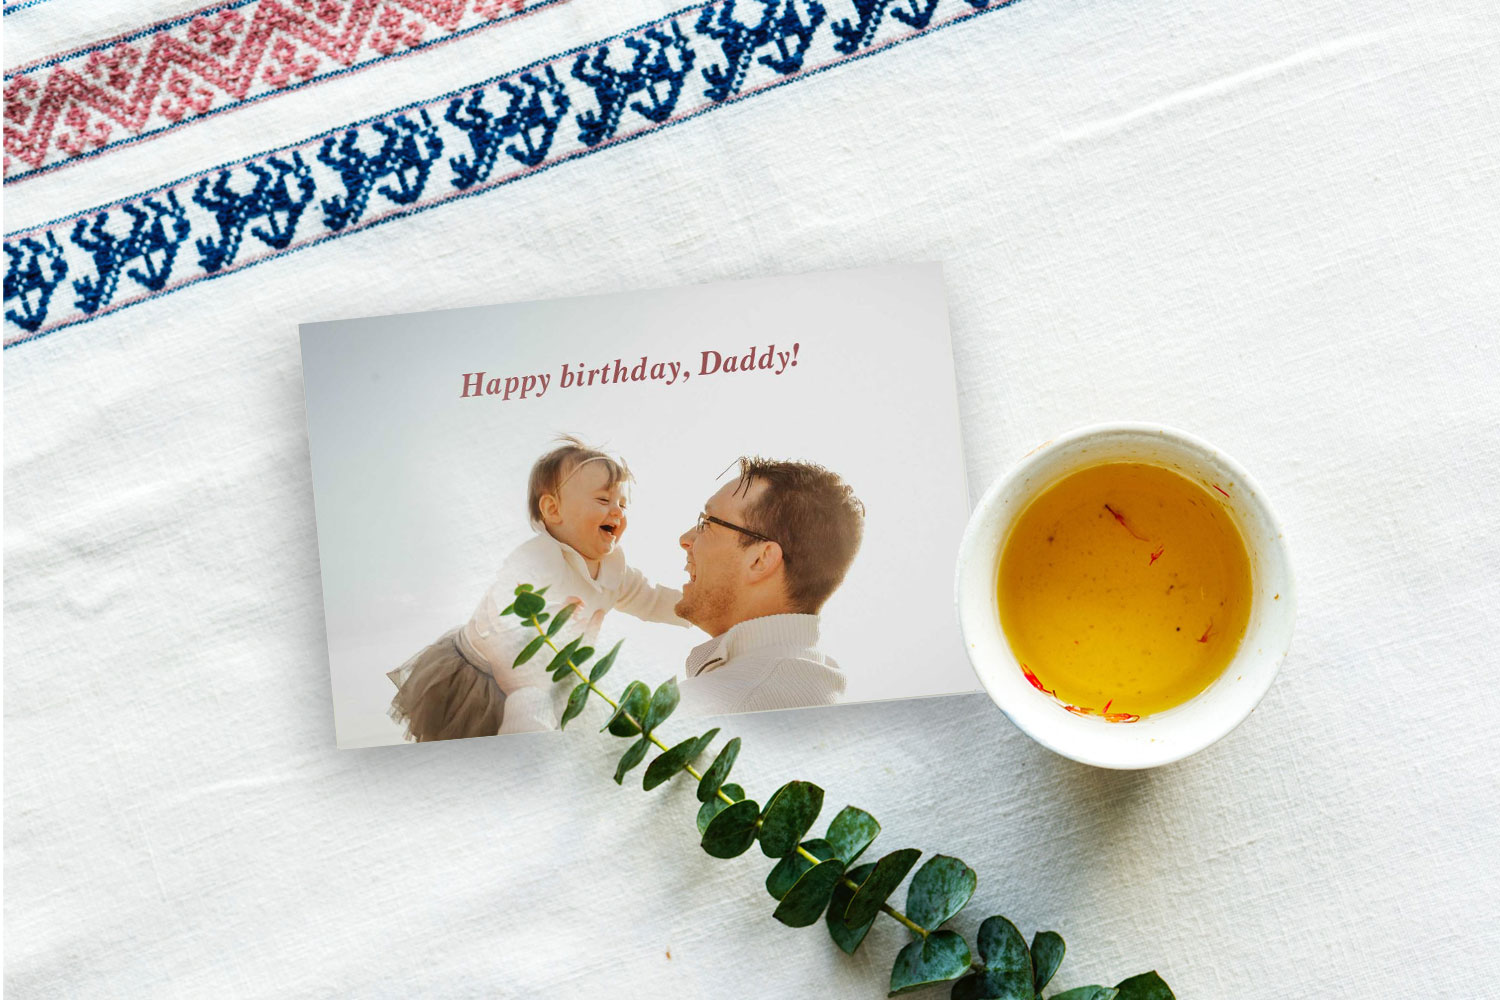 DIY birthday cards - ideas and tips (5)